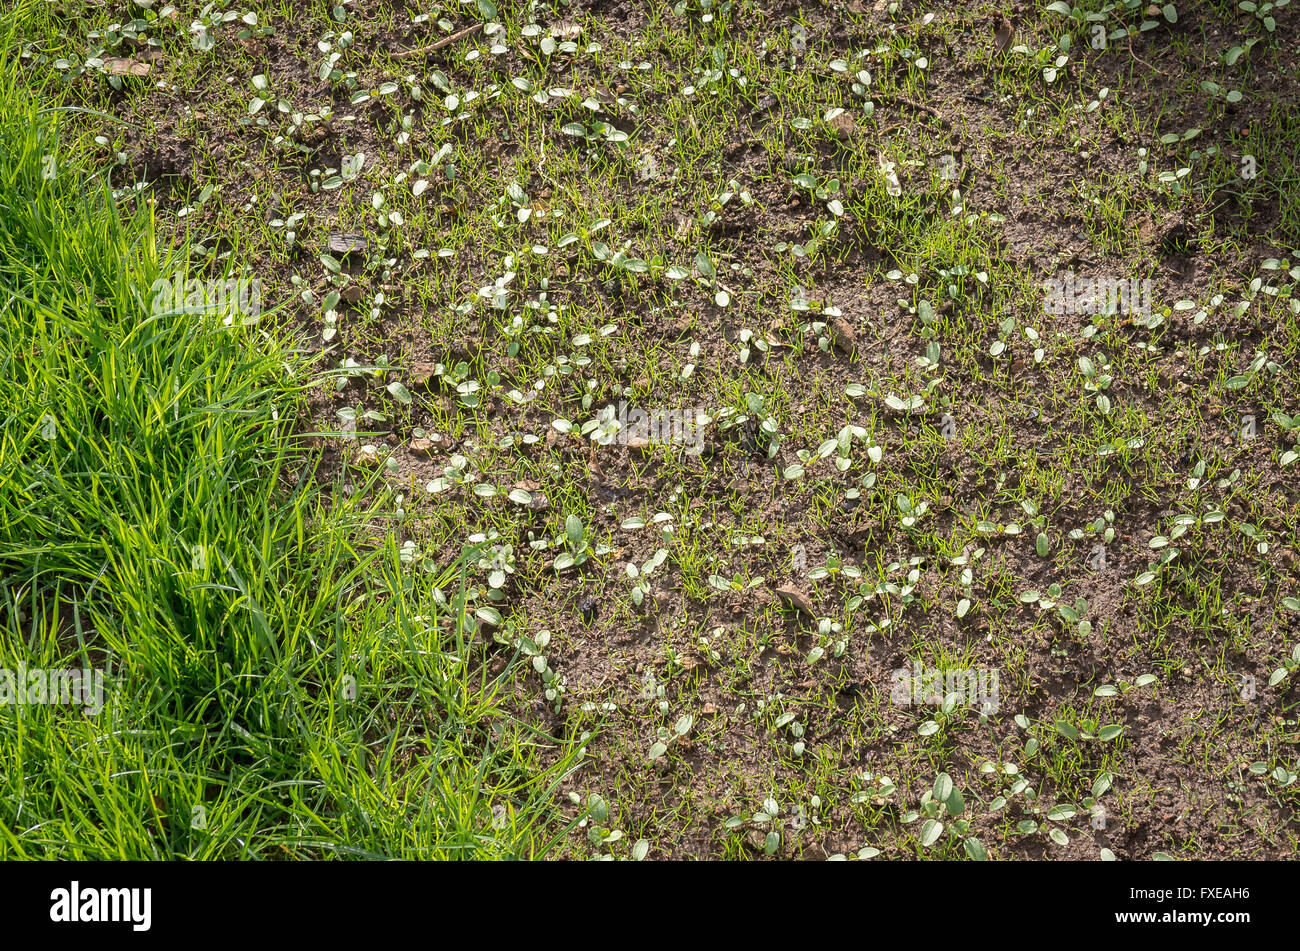 Reseeded section of a grass lawn showing growth of unidentified seedlings in a lawn seed mixture - Stock Image